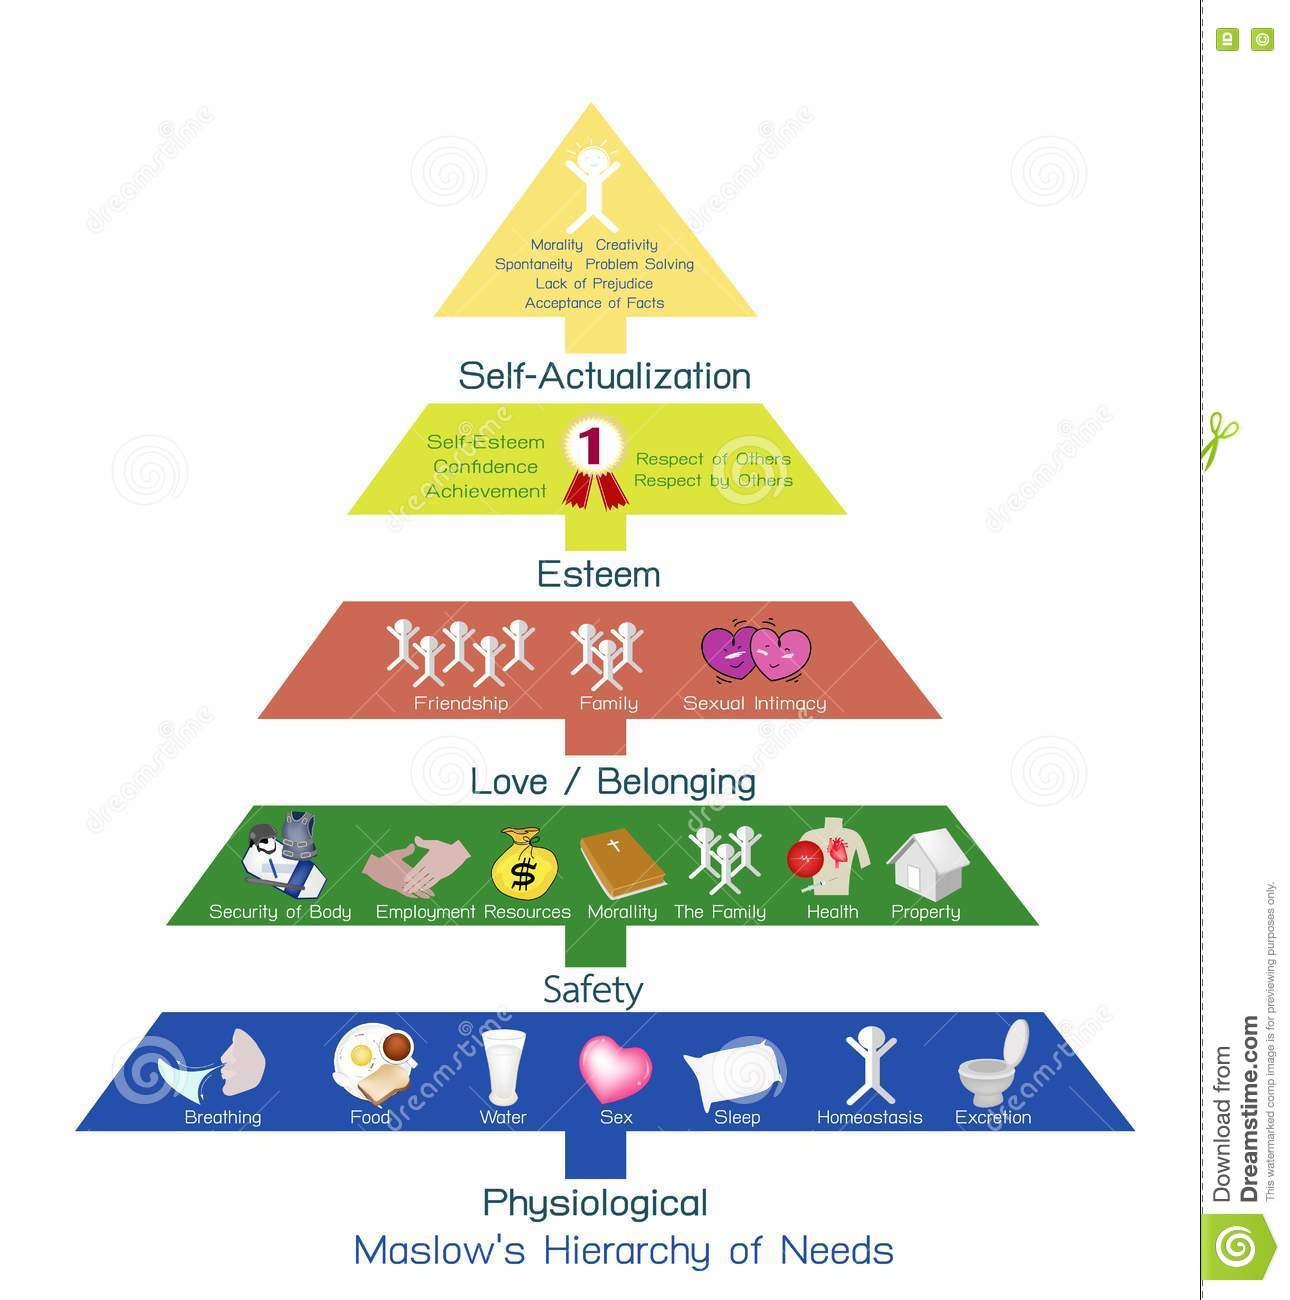 analysis of maslow hierarchy of needs Maslow's hierarchy of needs is often cited as a possible basis for a fuller understanding of the individual's needs, particularly with regard to quality of life the reluctance to use these concepts.